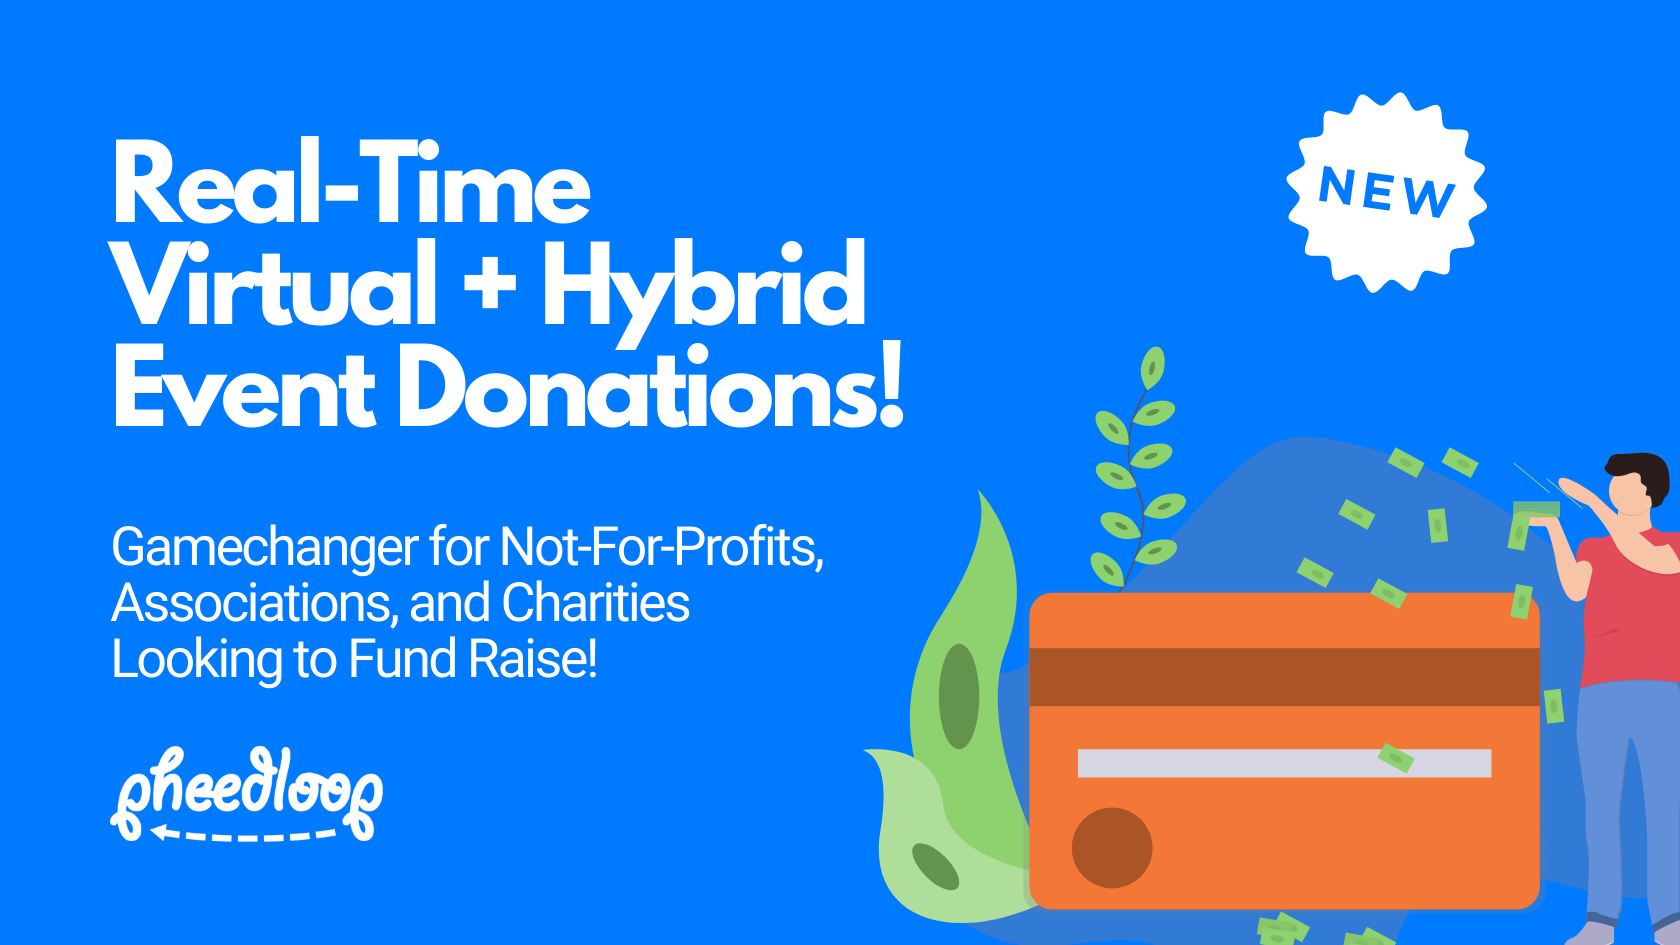 Announcing Real-Time Event Donations! A Gamechanger for Not-For-Profits, Associations, and Charities Looking to Fund Raise!